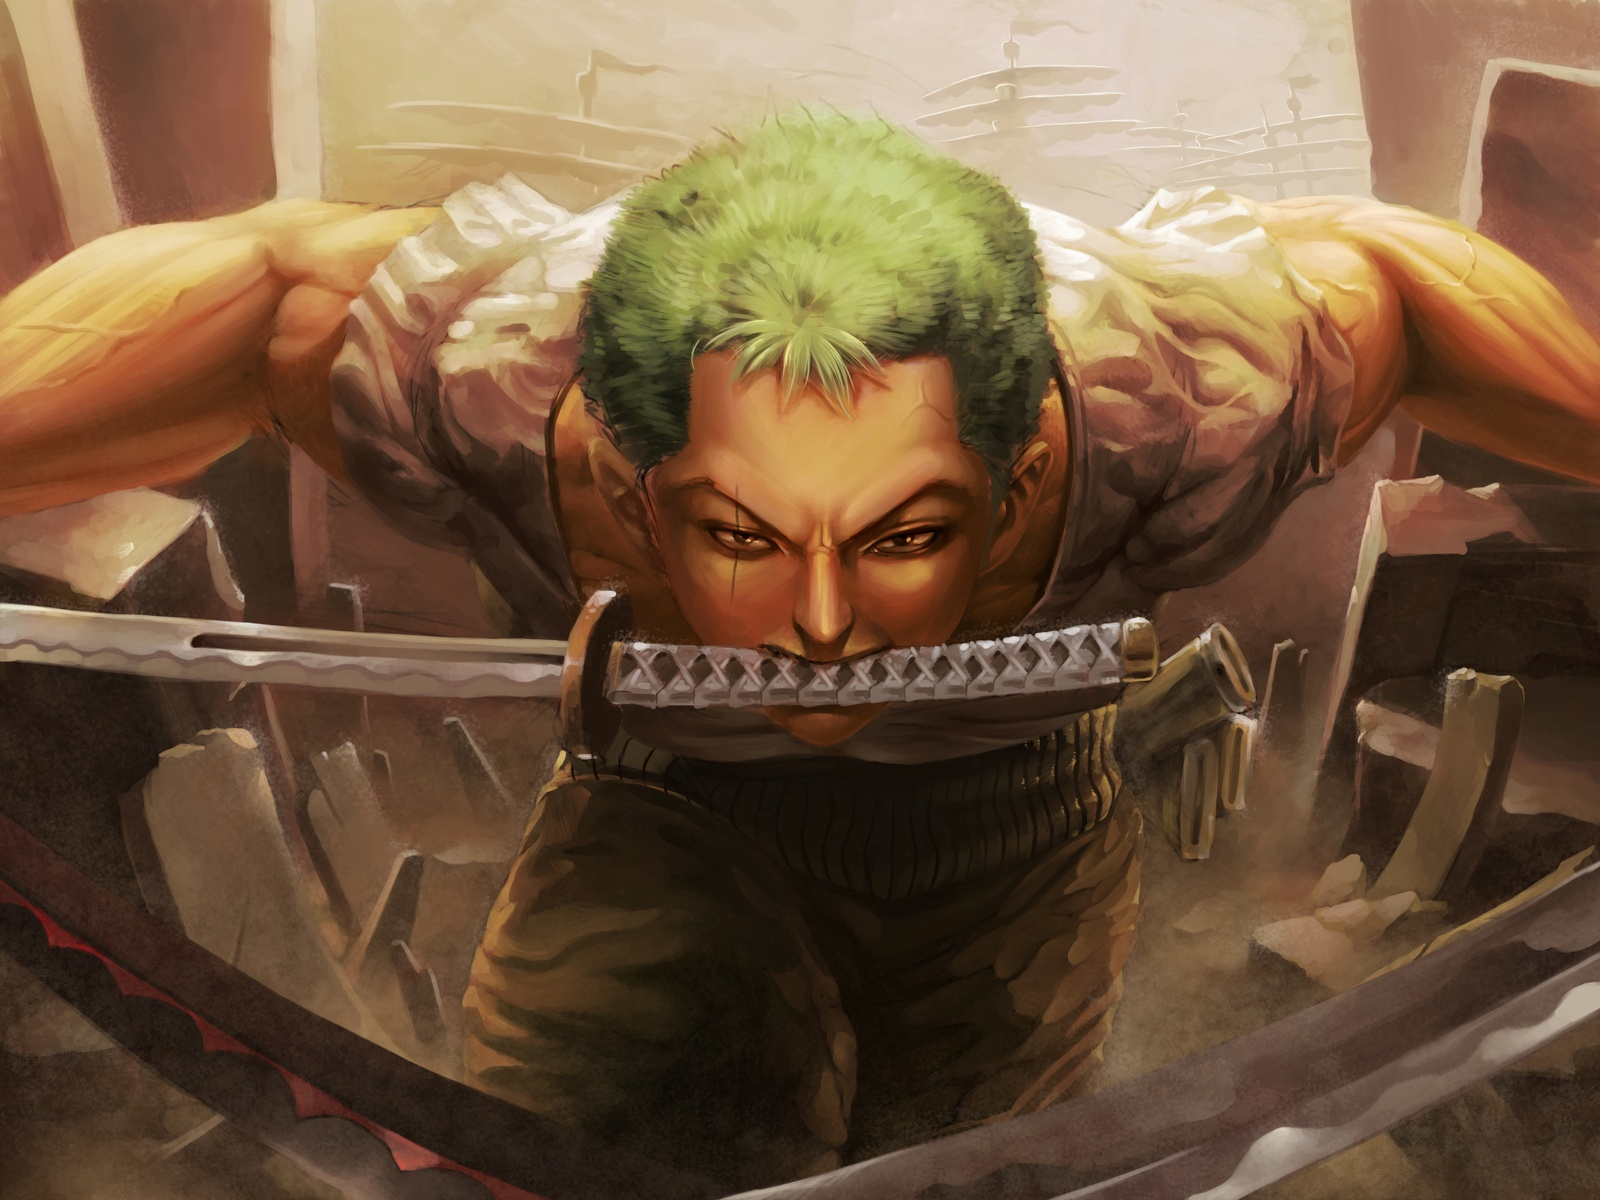 1600x1200 Roronoa Zoro 4k 1600x1200 Resolution Hd 4k Wallpapers Images Backgrounds Photos And Pictures